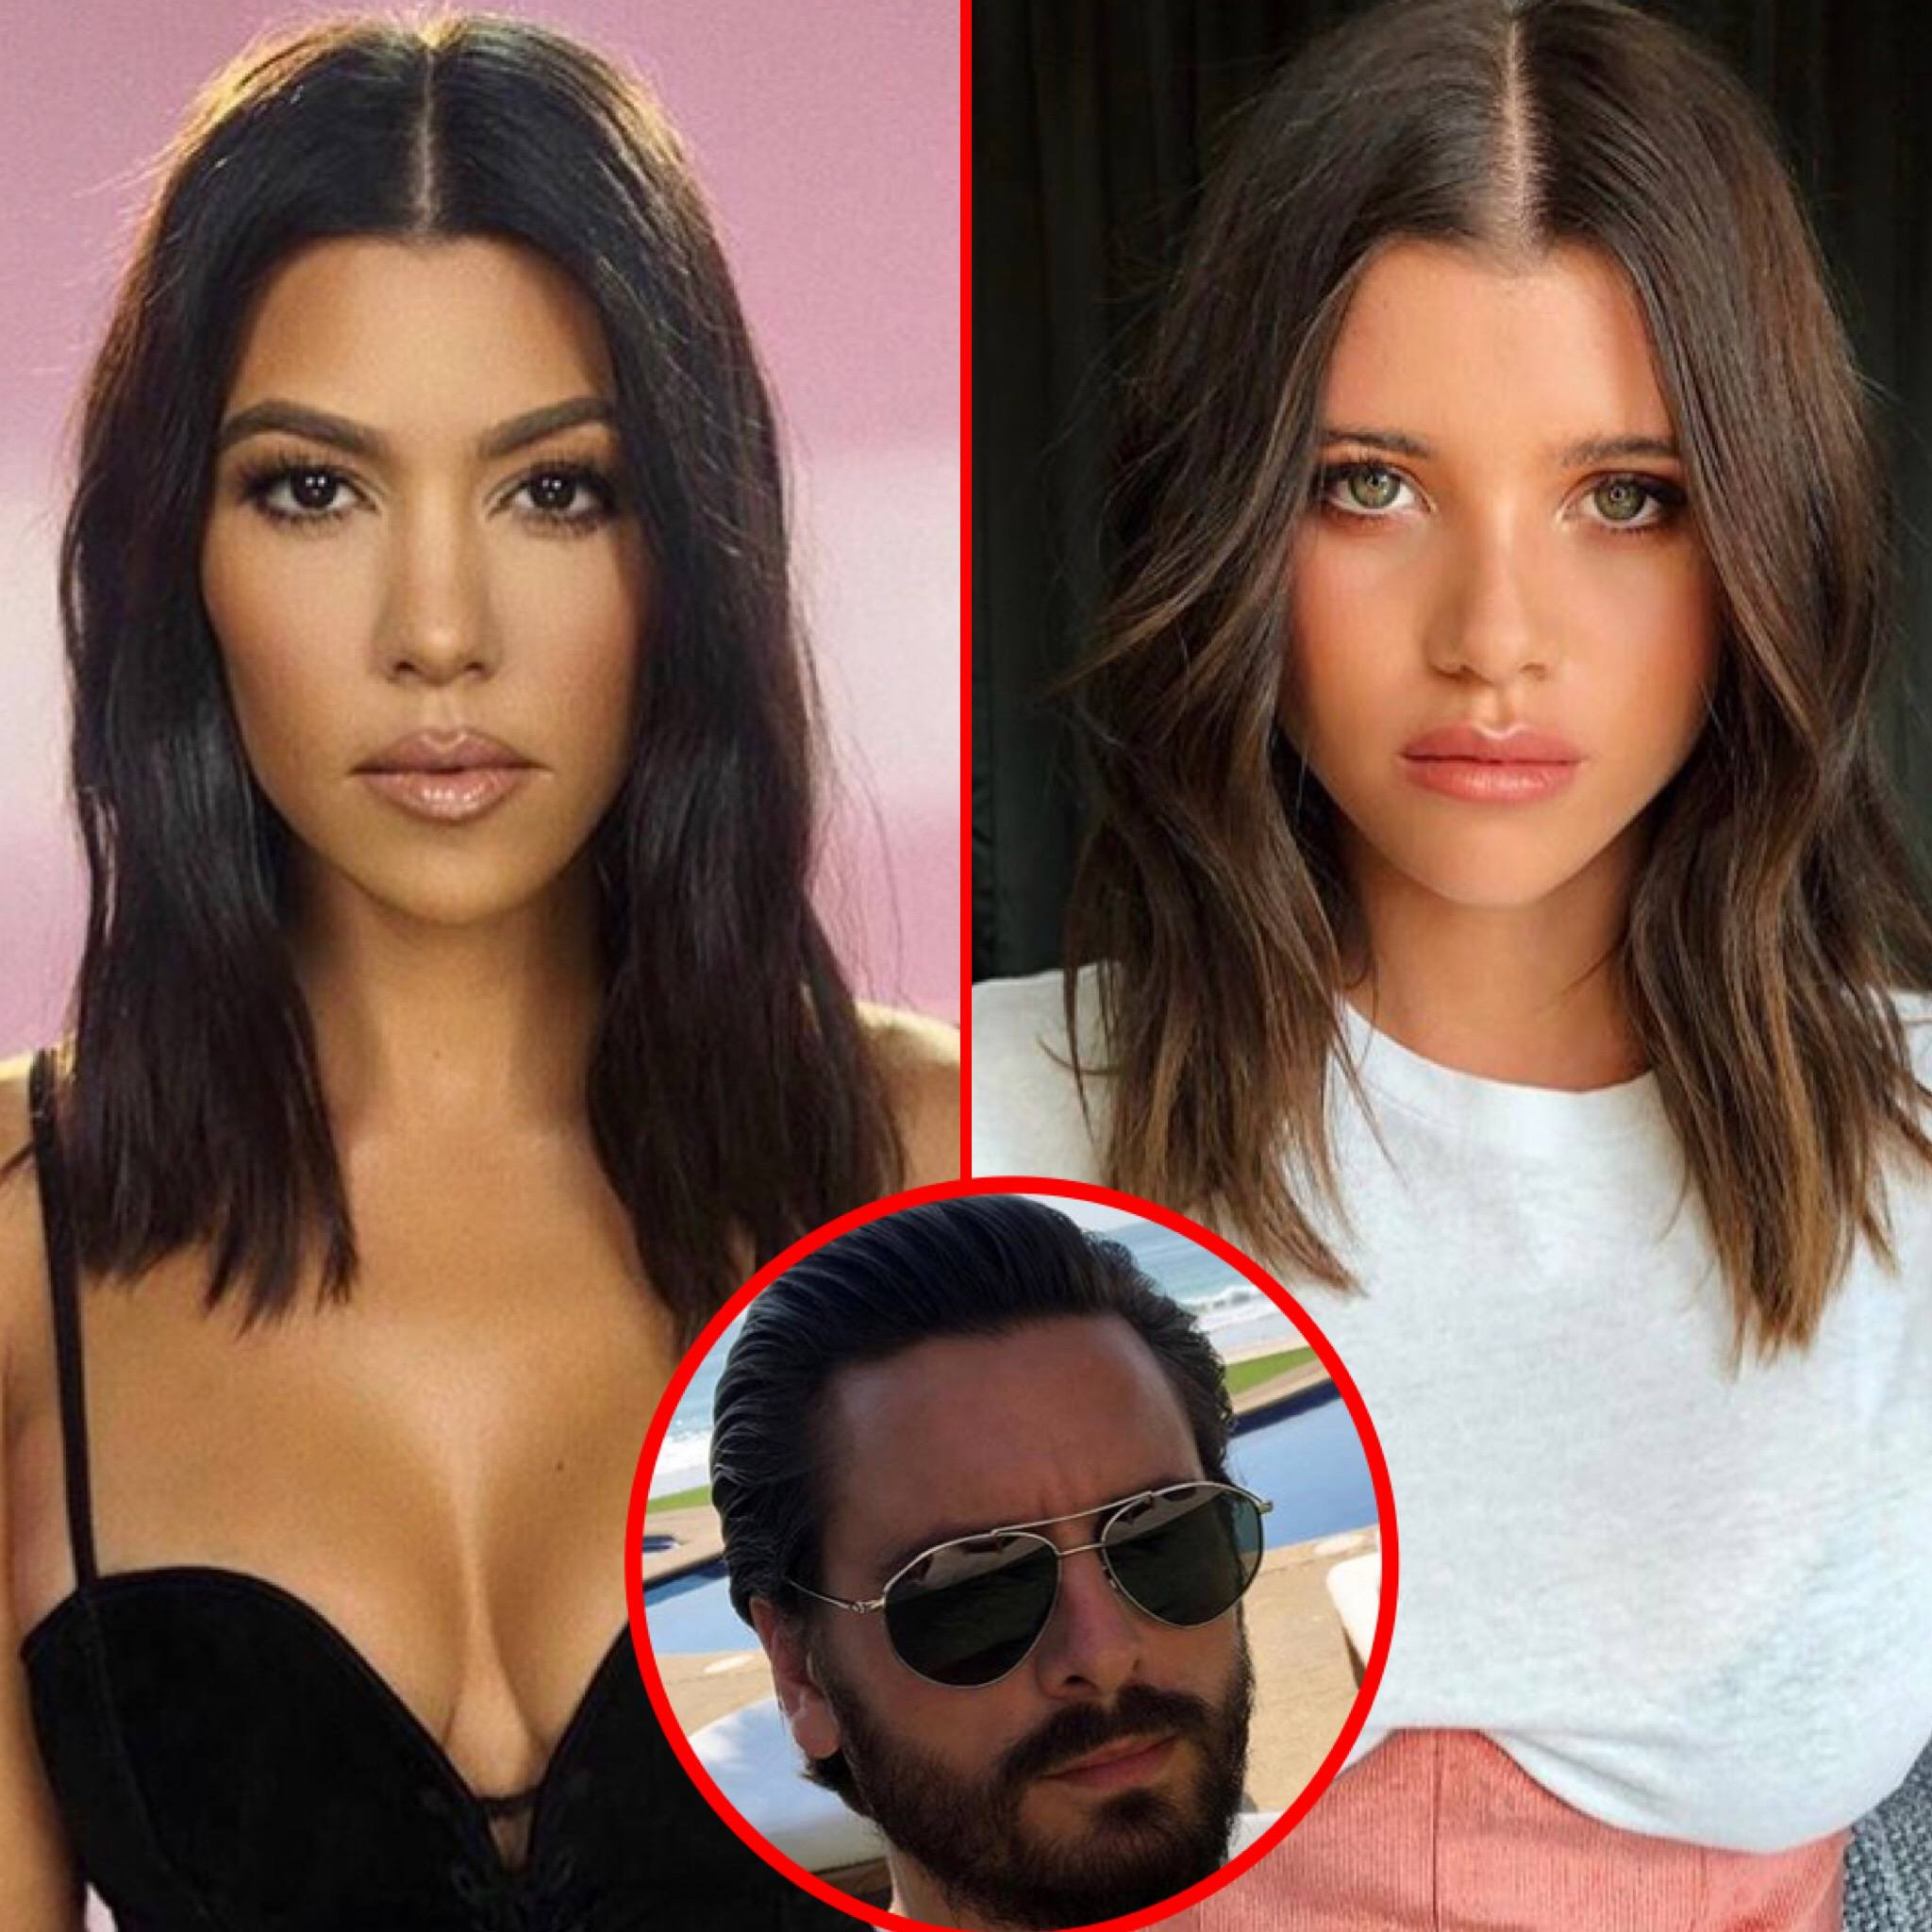 Here's The Reason For Which Kourtney Kardashian Became Friends With Sofia Richie And Spent Christmas Together